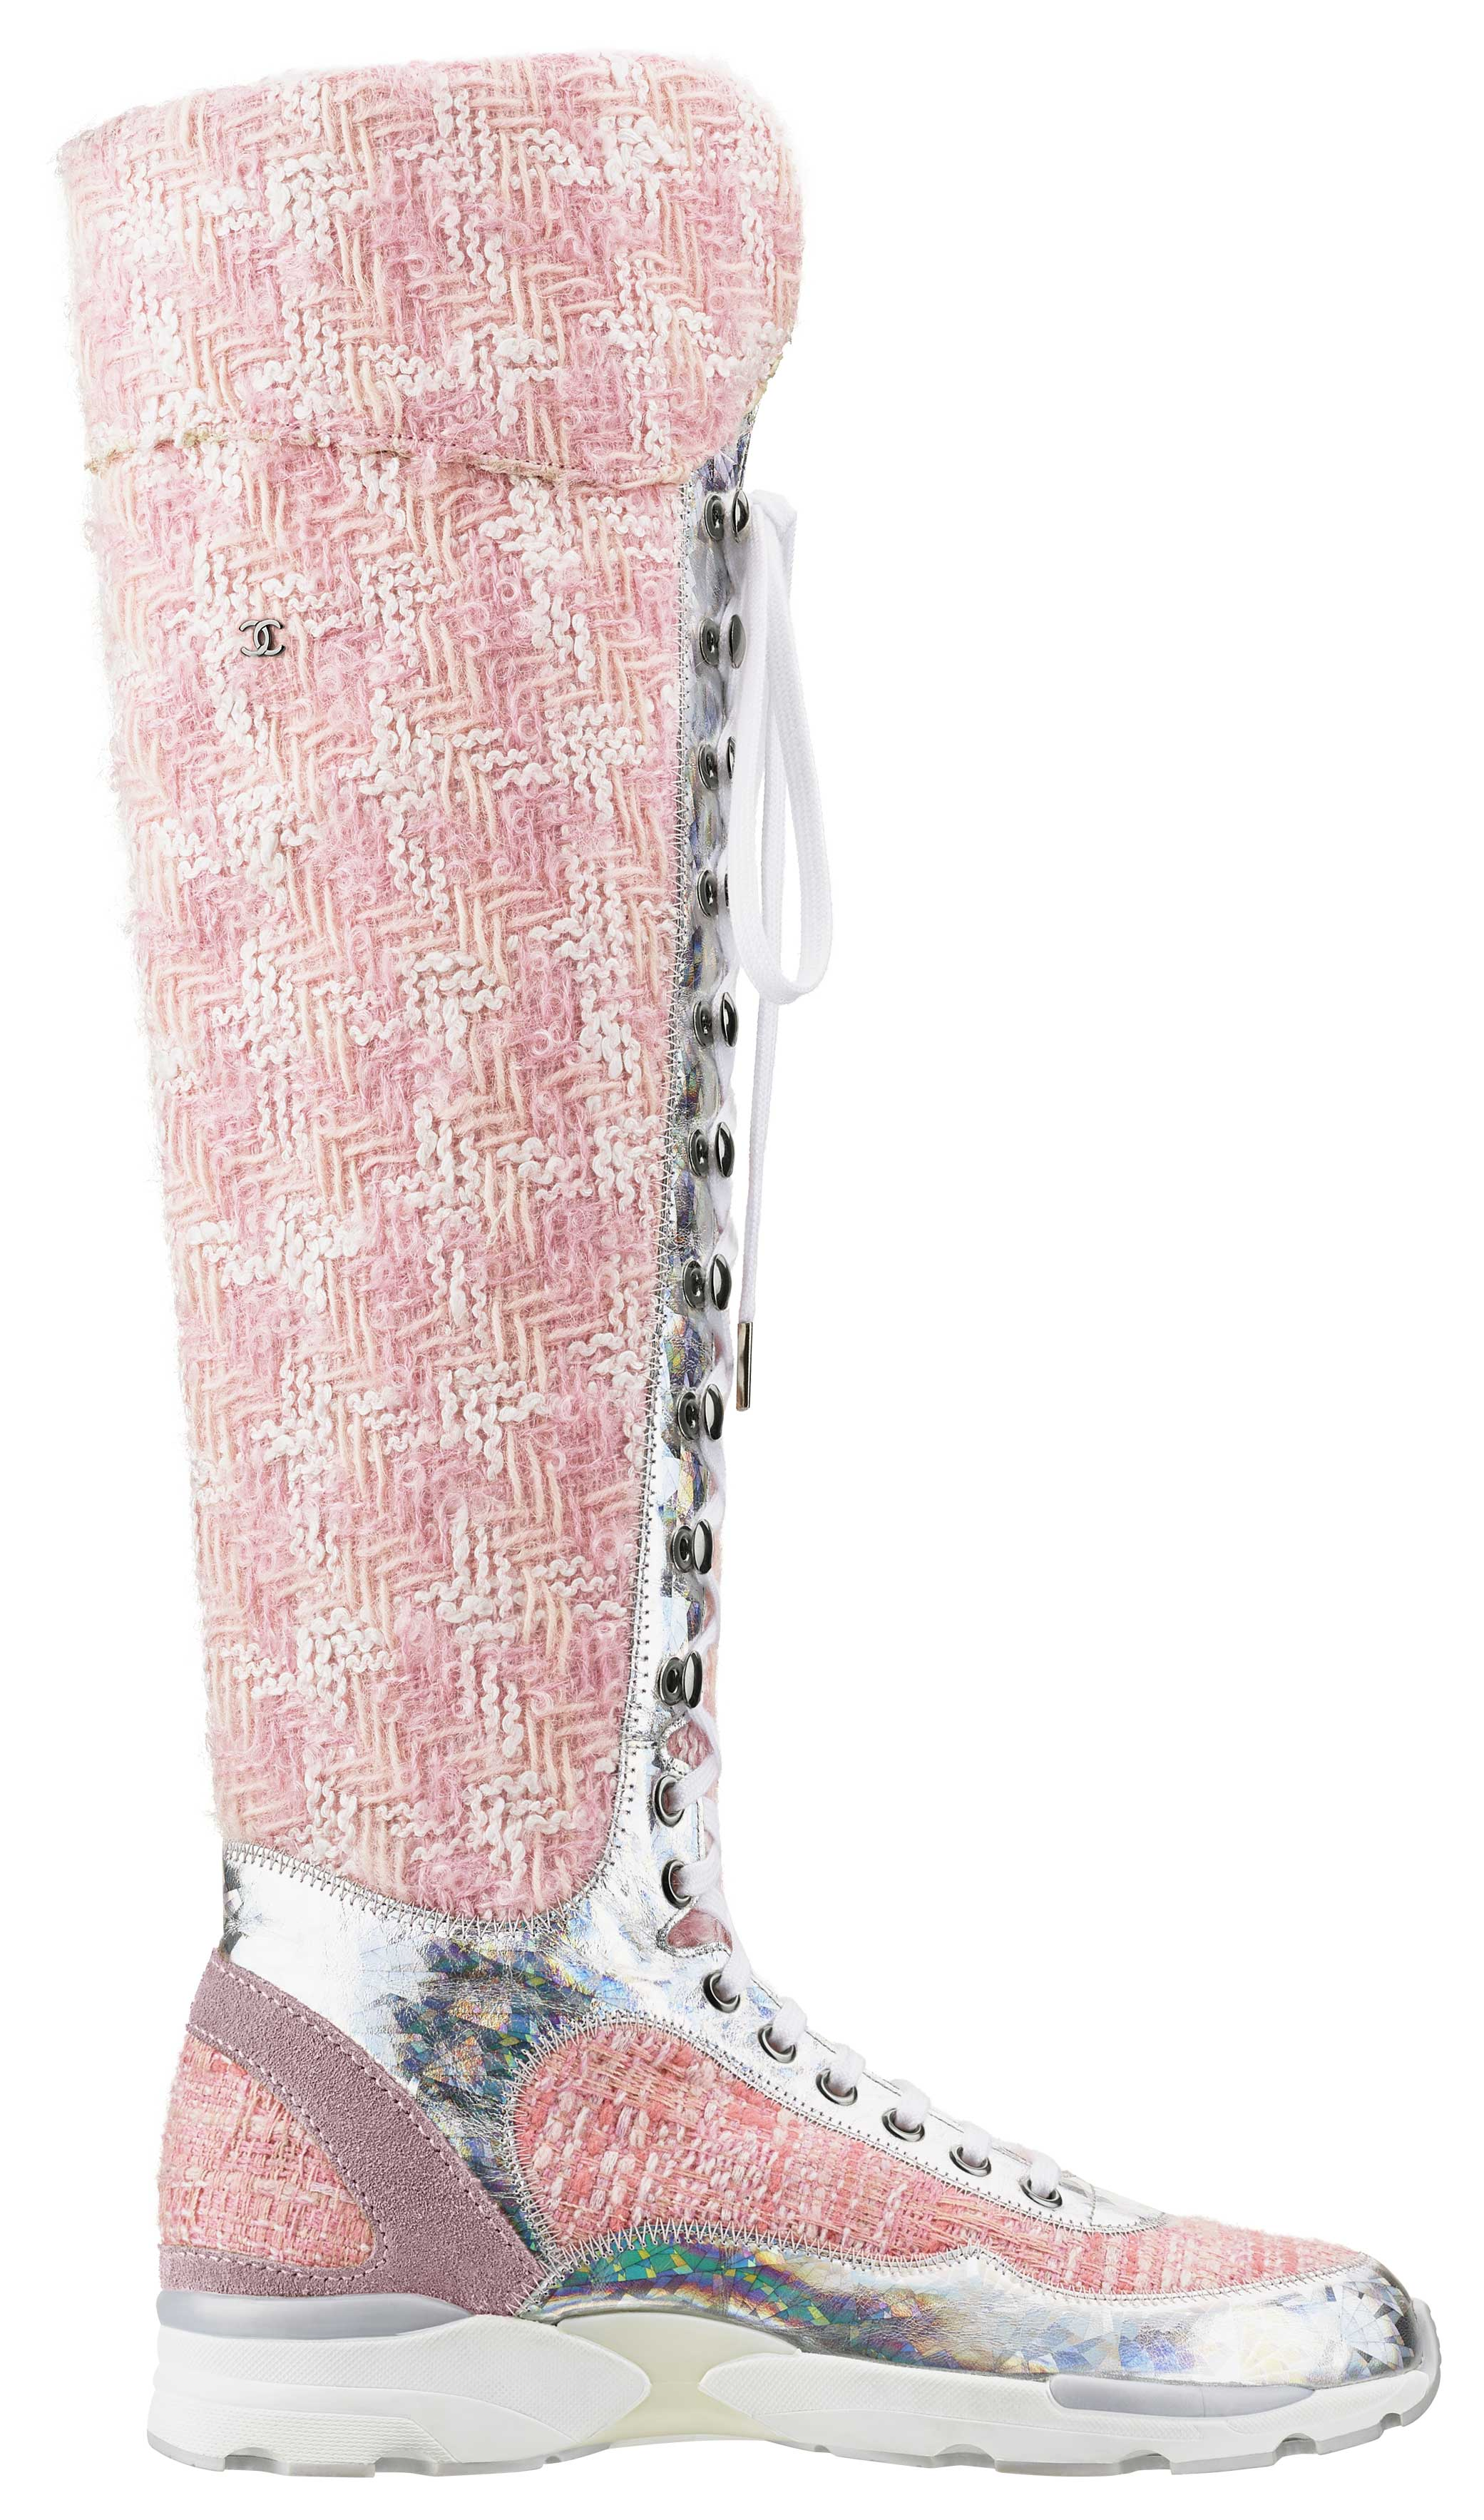 Pink-and-white-tweed-and-rubber-sneaker_Basket-en-tweed-rose-et-blanc-et-caoutchouc